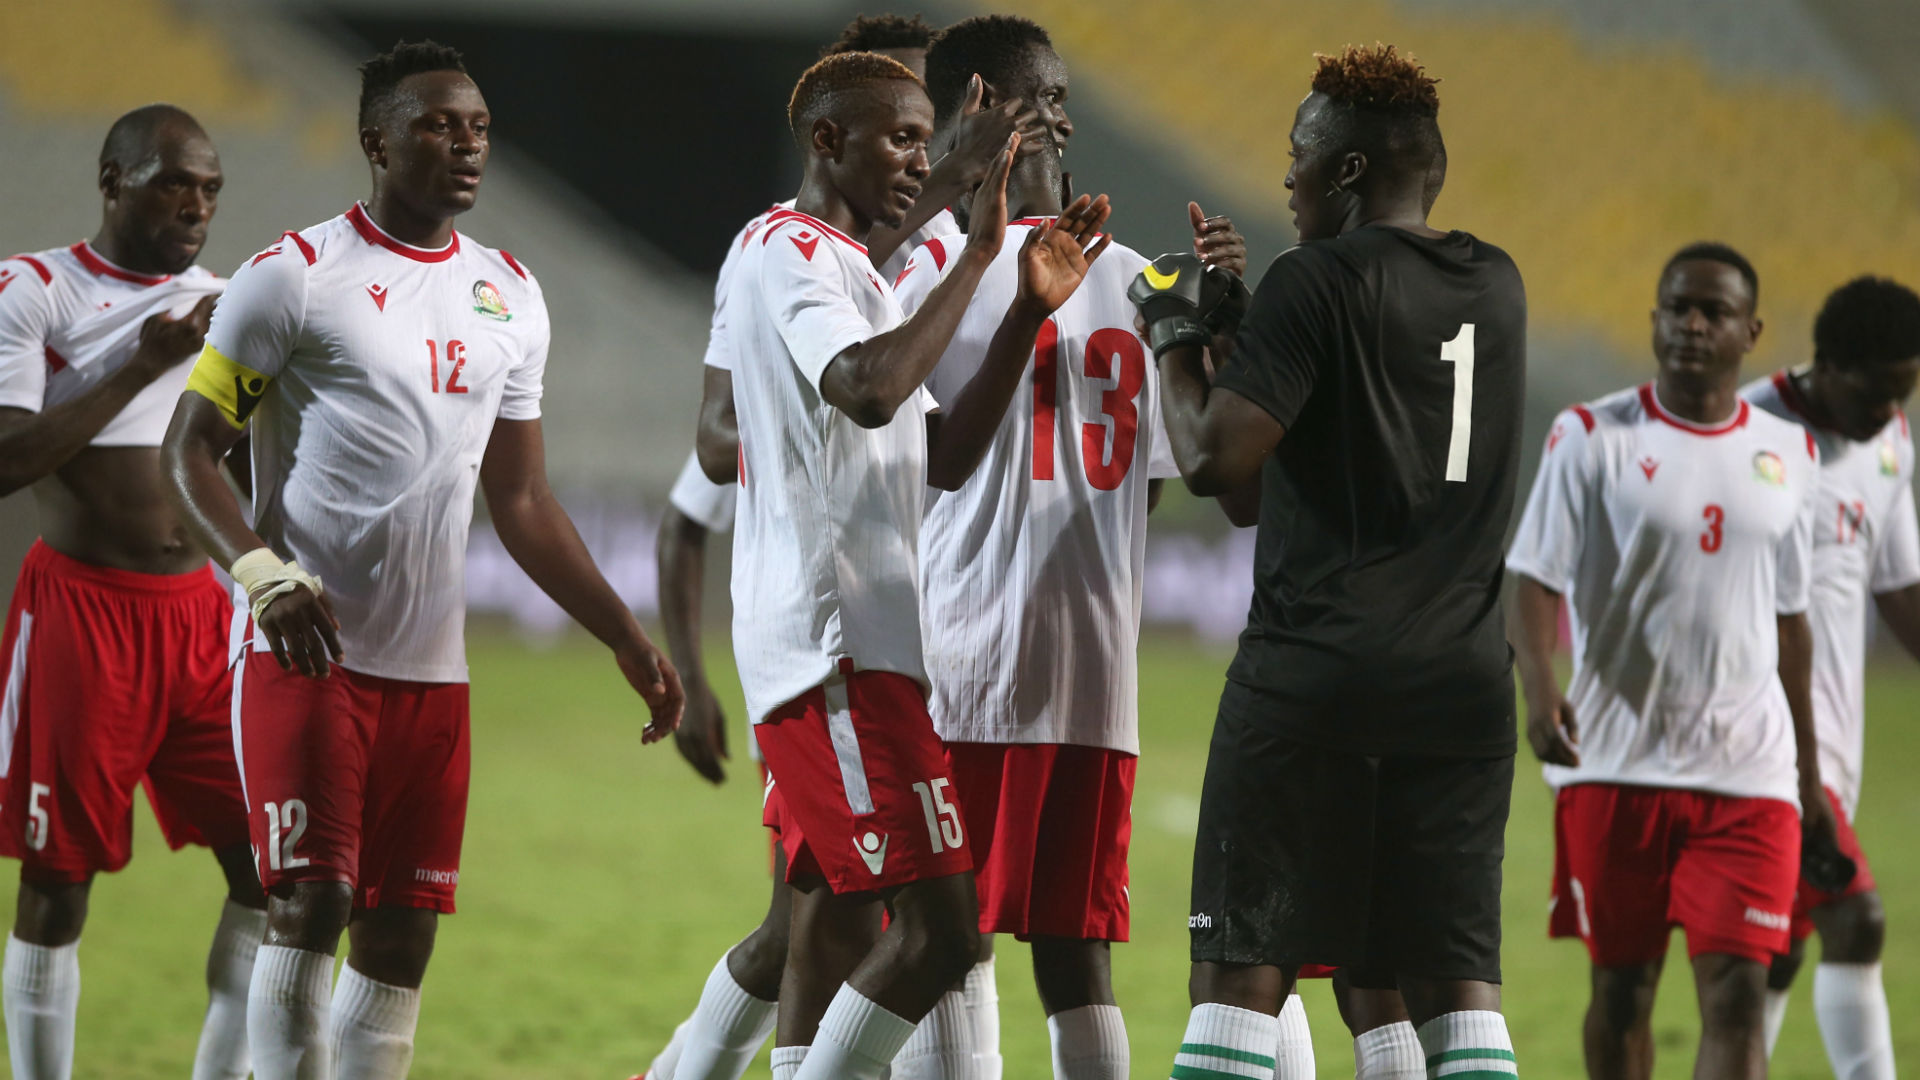 Afcon 2021 Qualifiers: Harambee Stars deserved to win against Egypt – Kimanzi